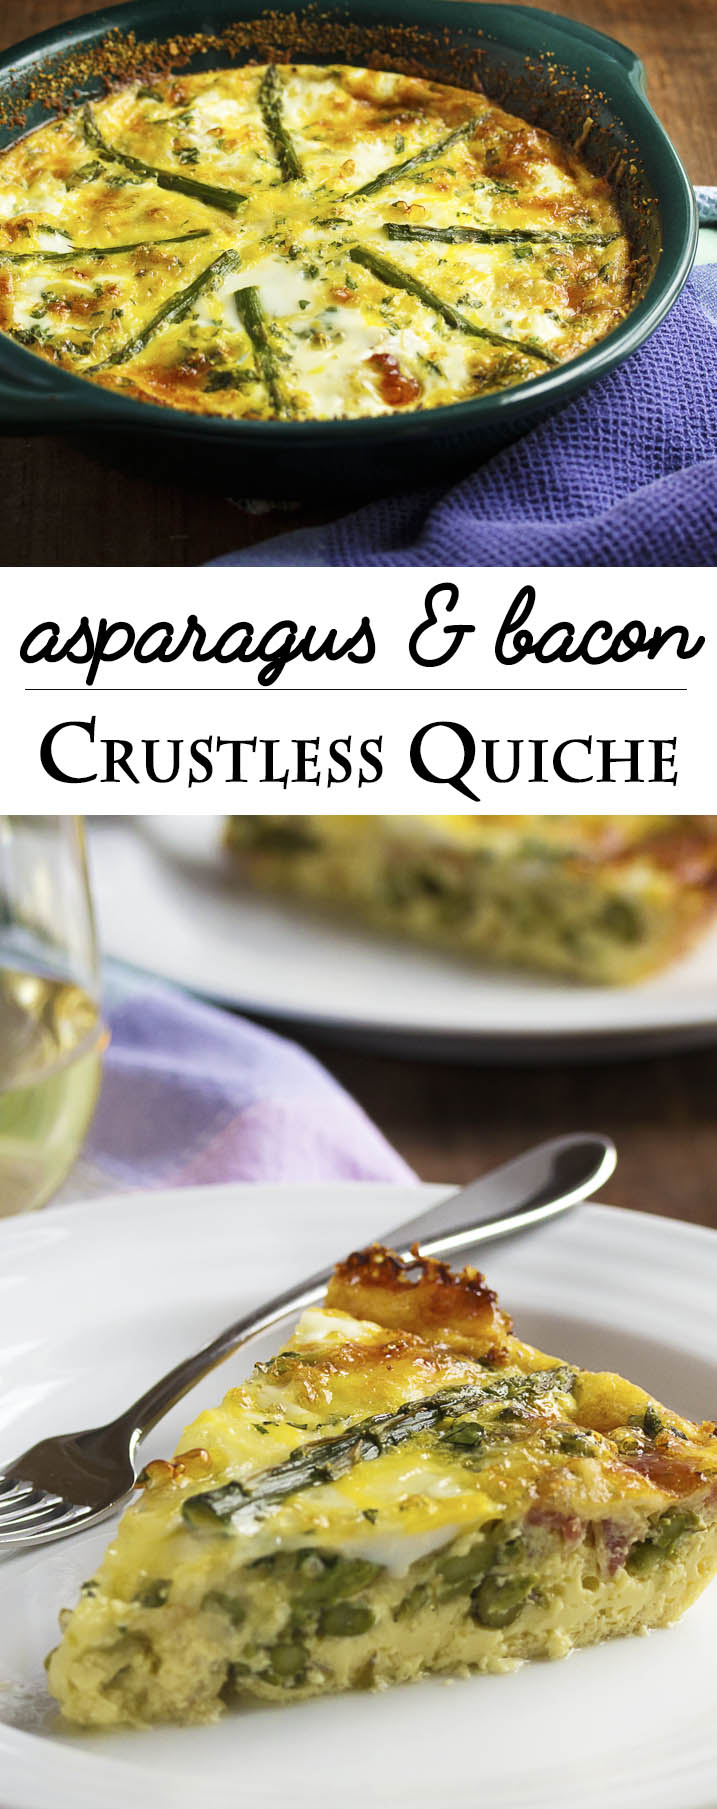 Asparagus And Bacon Crustless Quiche Just A Little Bit